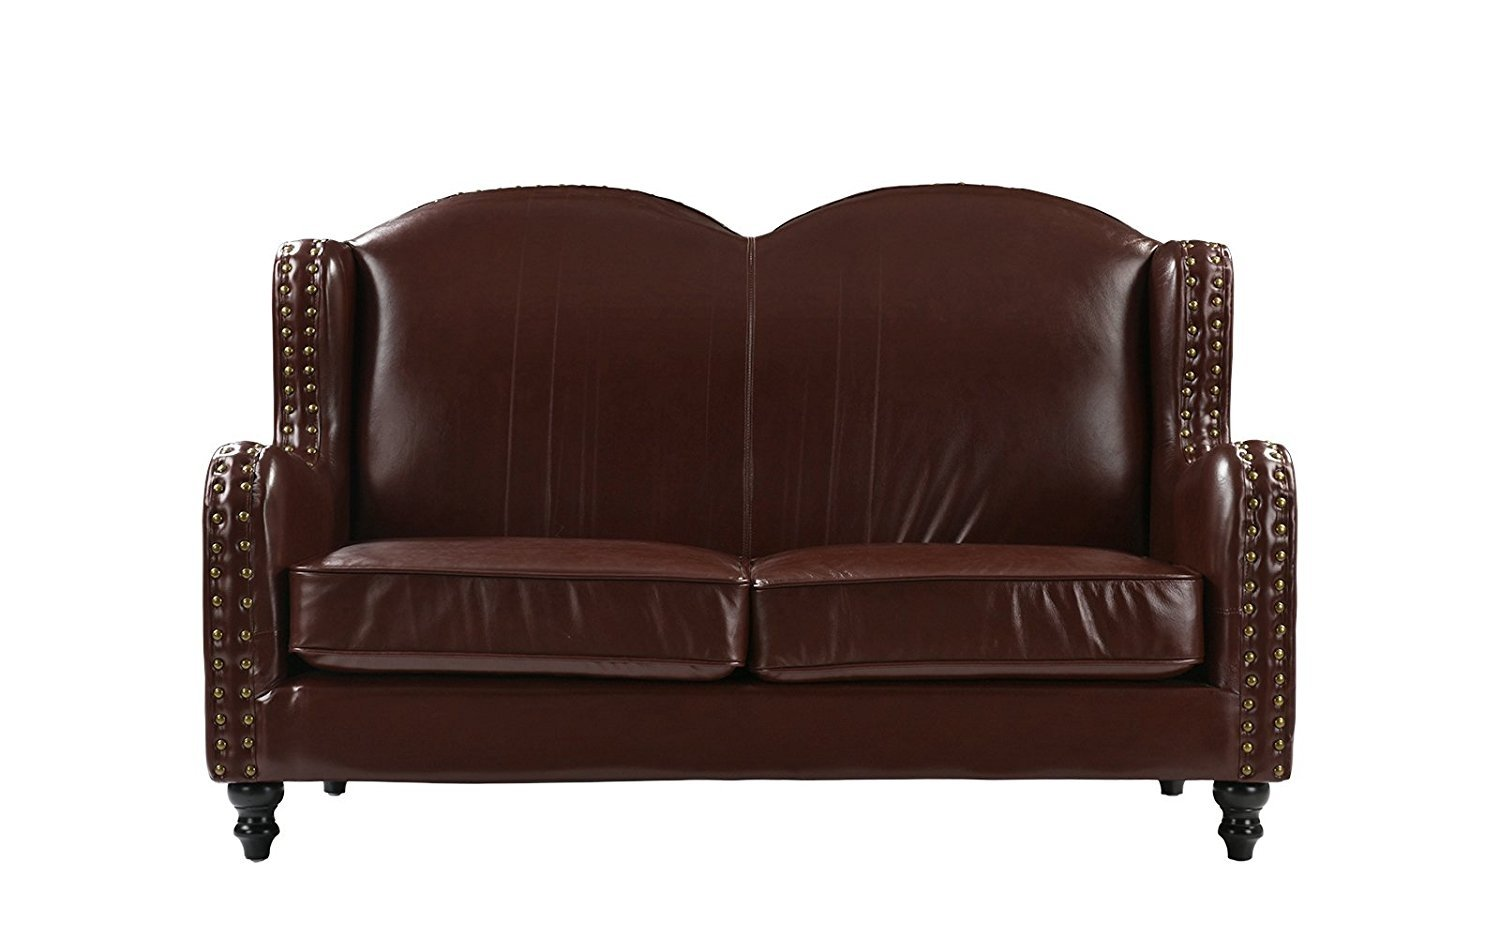 Leather Loveseat 2 Seater Living Room Couch With Nailhead Trim Dark Brown 662187610979 Ebay